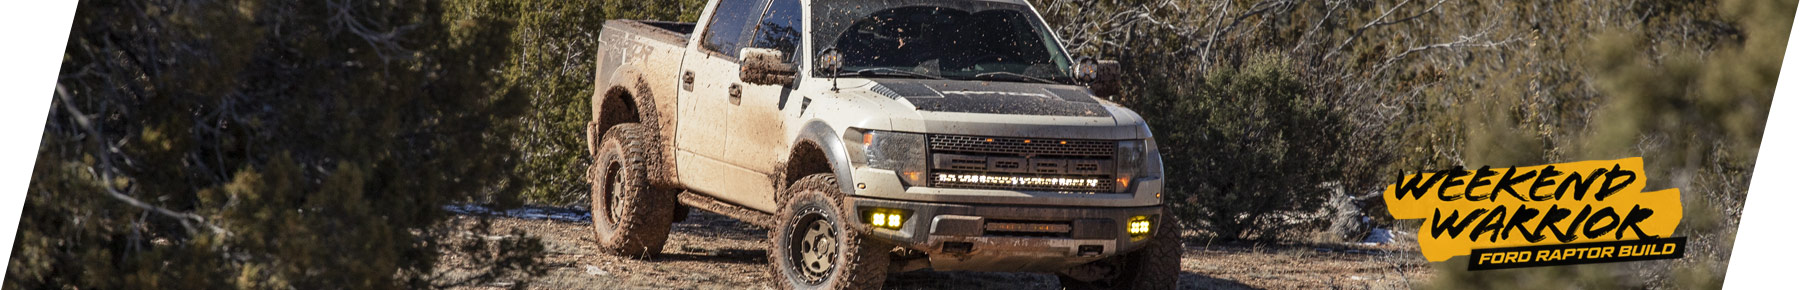 2010-2014 SVT Raptor Exterior Upgrades